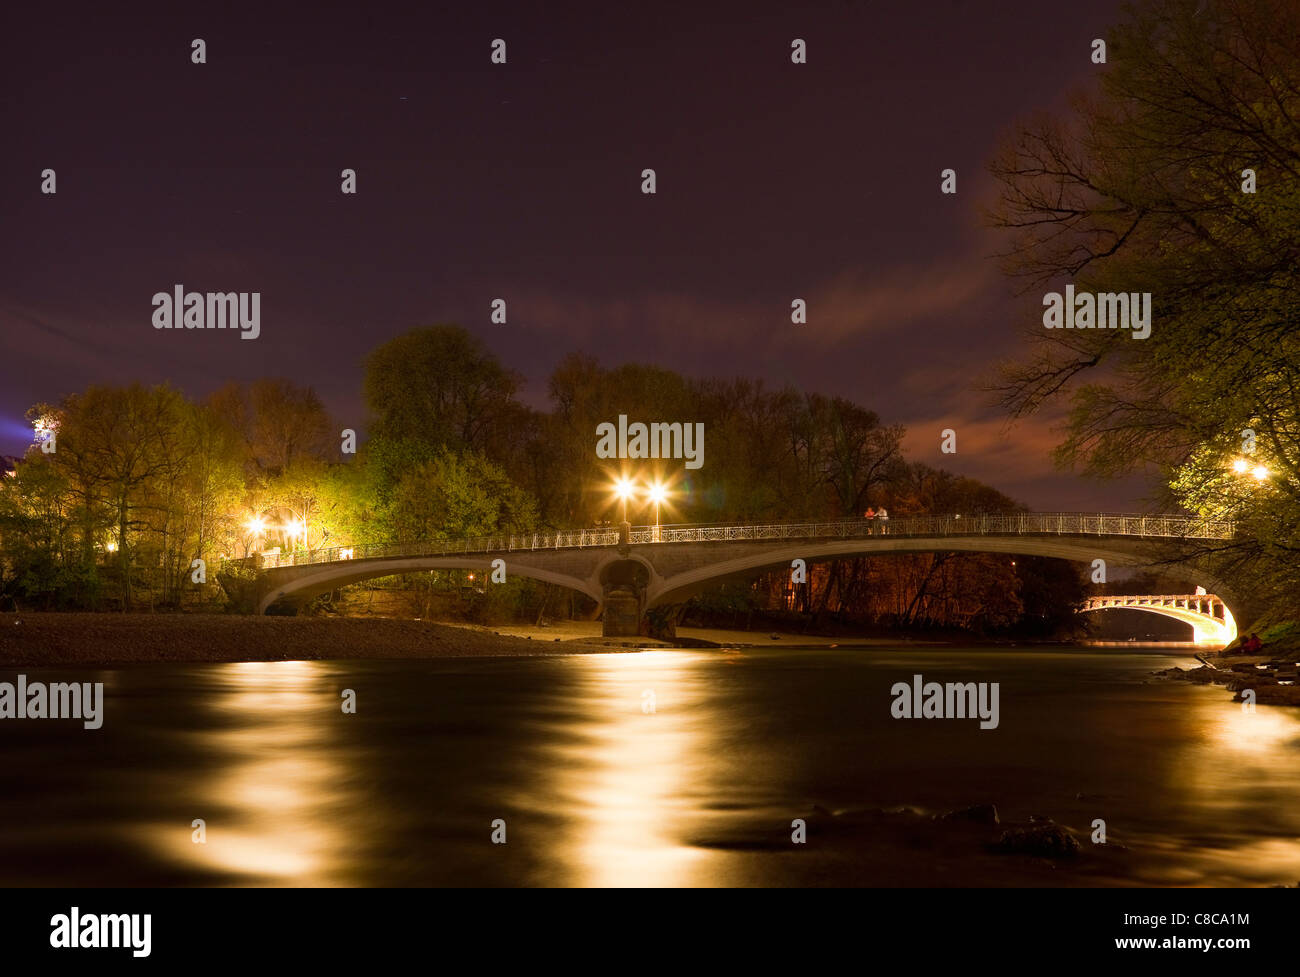 Lit bridge over river at night - Stock Image